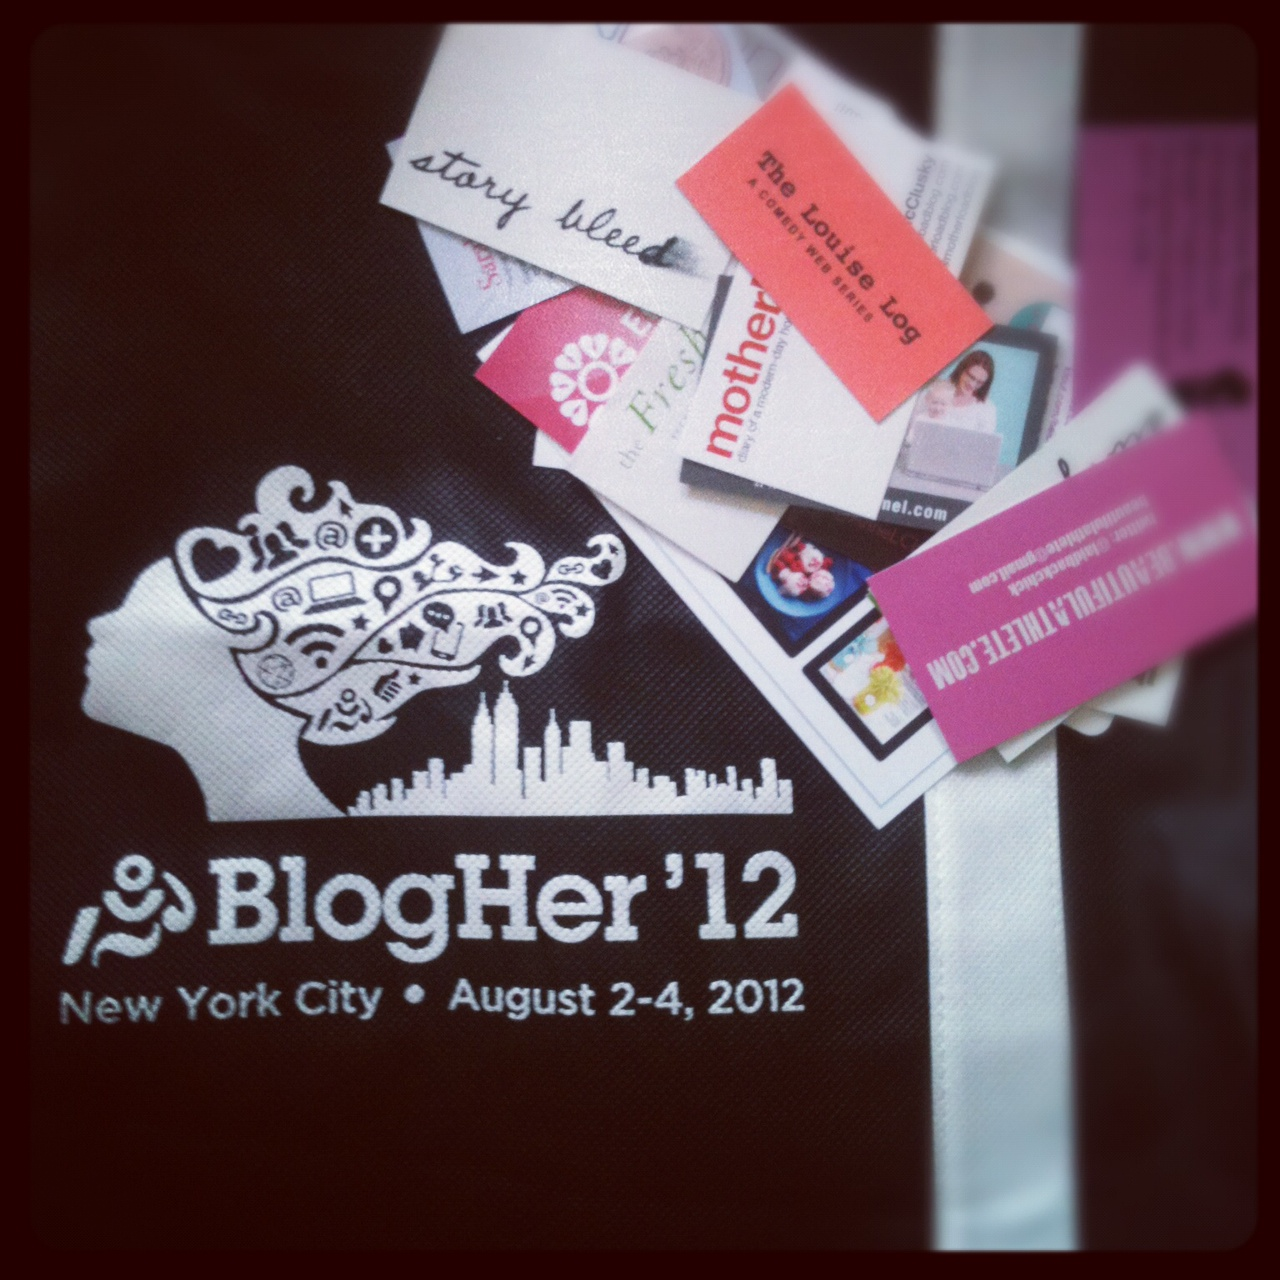 BlogHer, New York City, August 2012